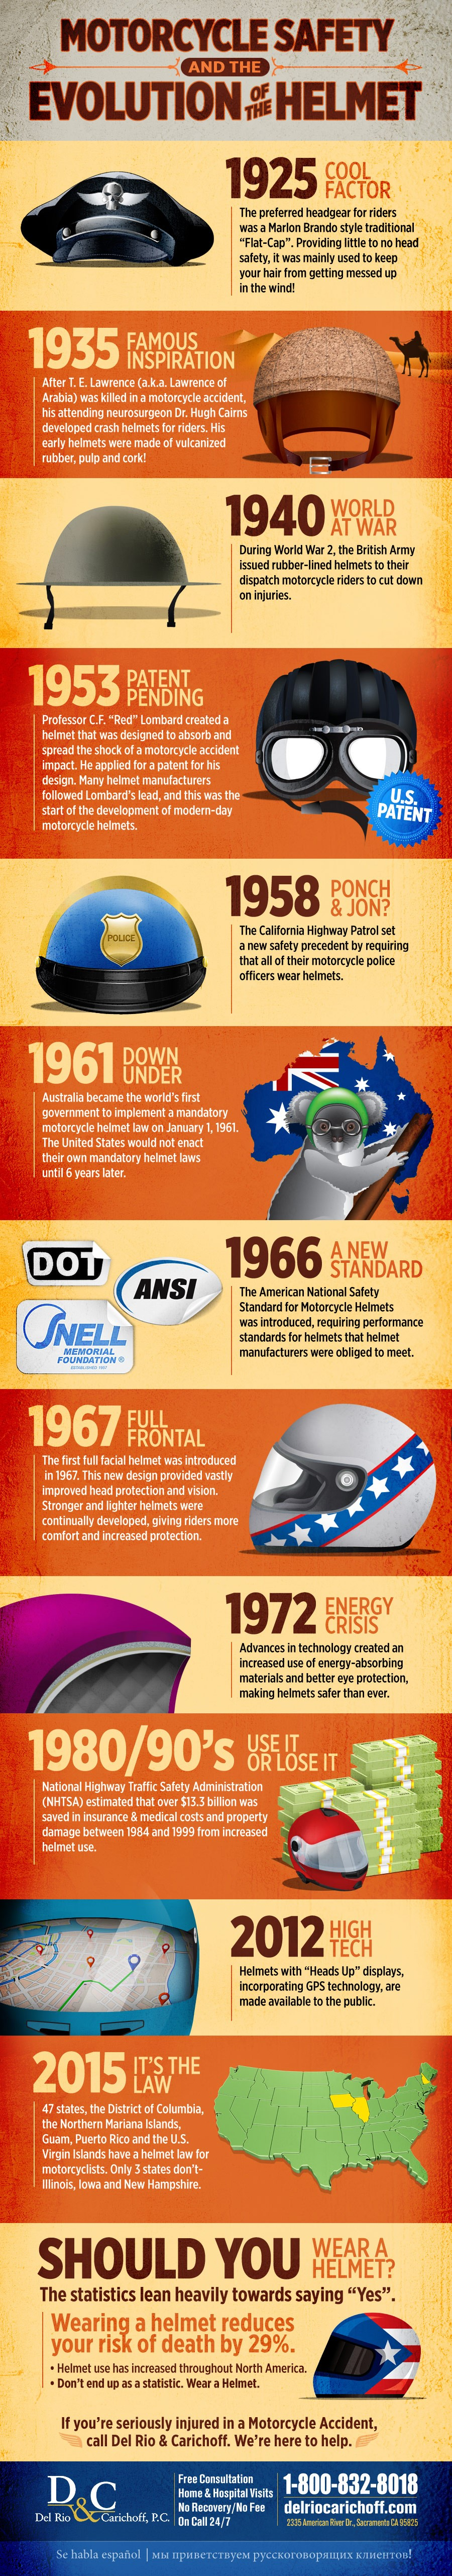 Motorcycle Safety and the Evolution of the Helmet